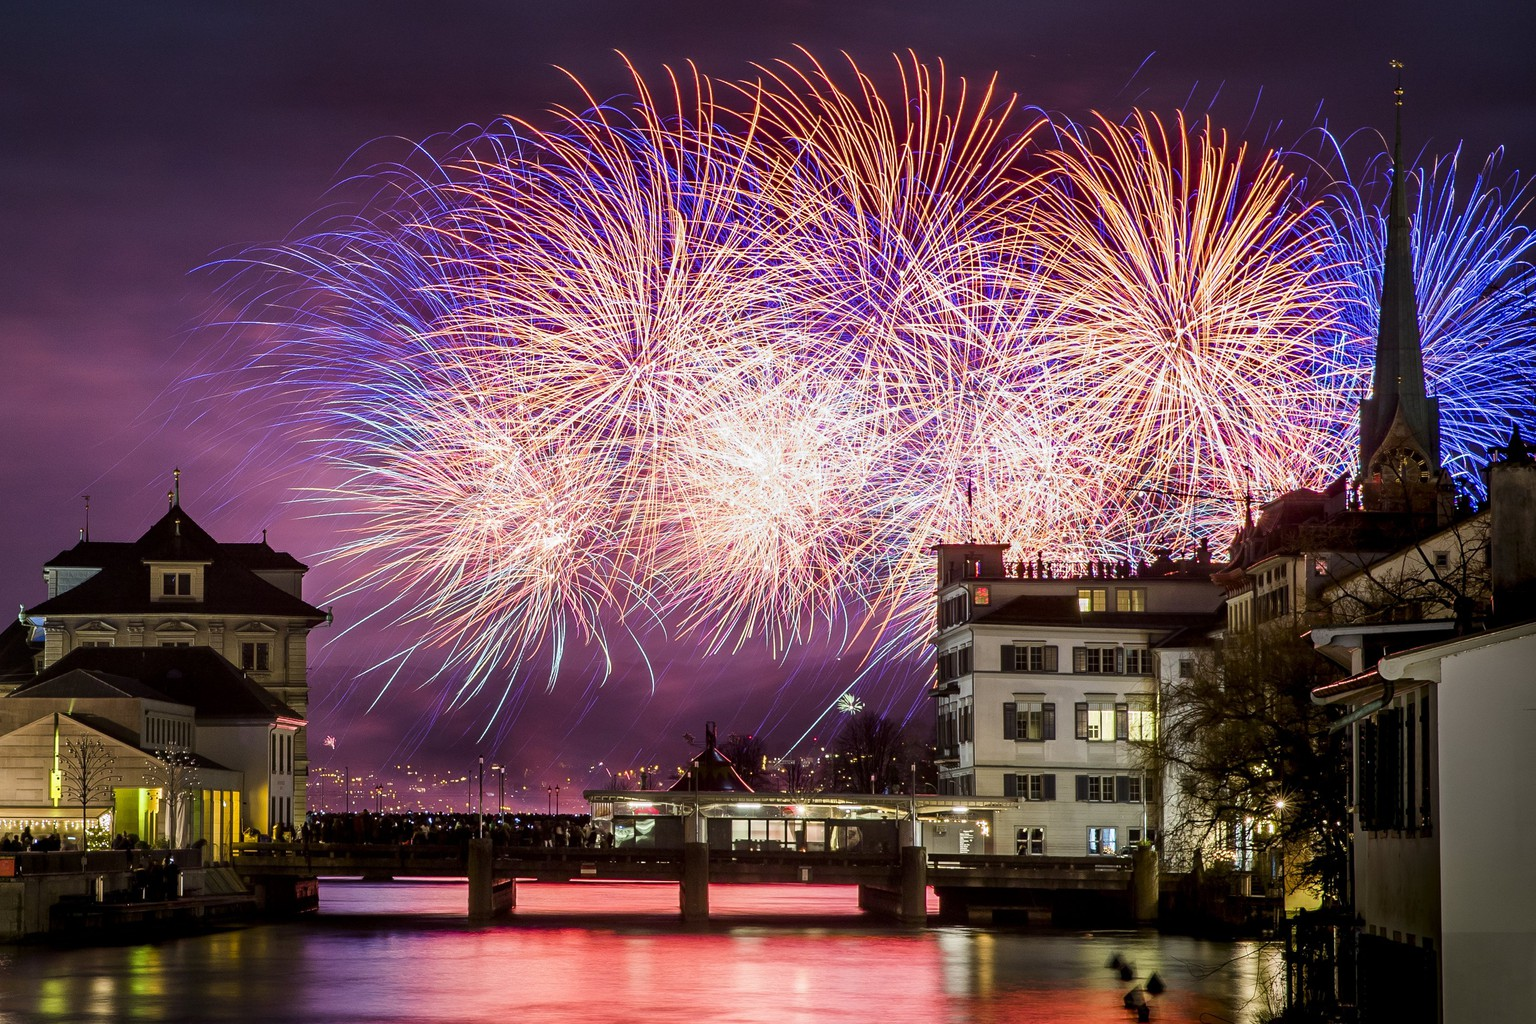 epa06411997 Fireworks illuminate the night sky over Zurich, Switzerland, 01 January 2018, during the New Year's celebrations.  EPA/CHRISTIAN MERZ